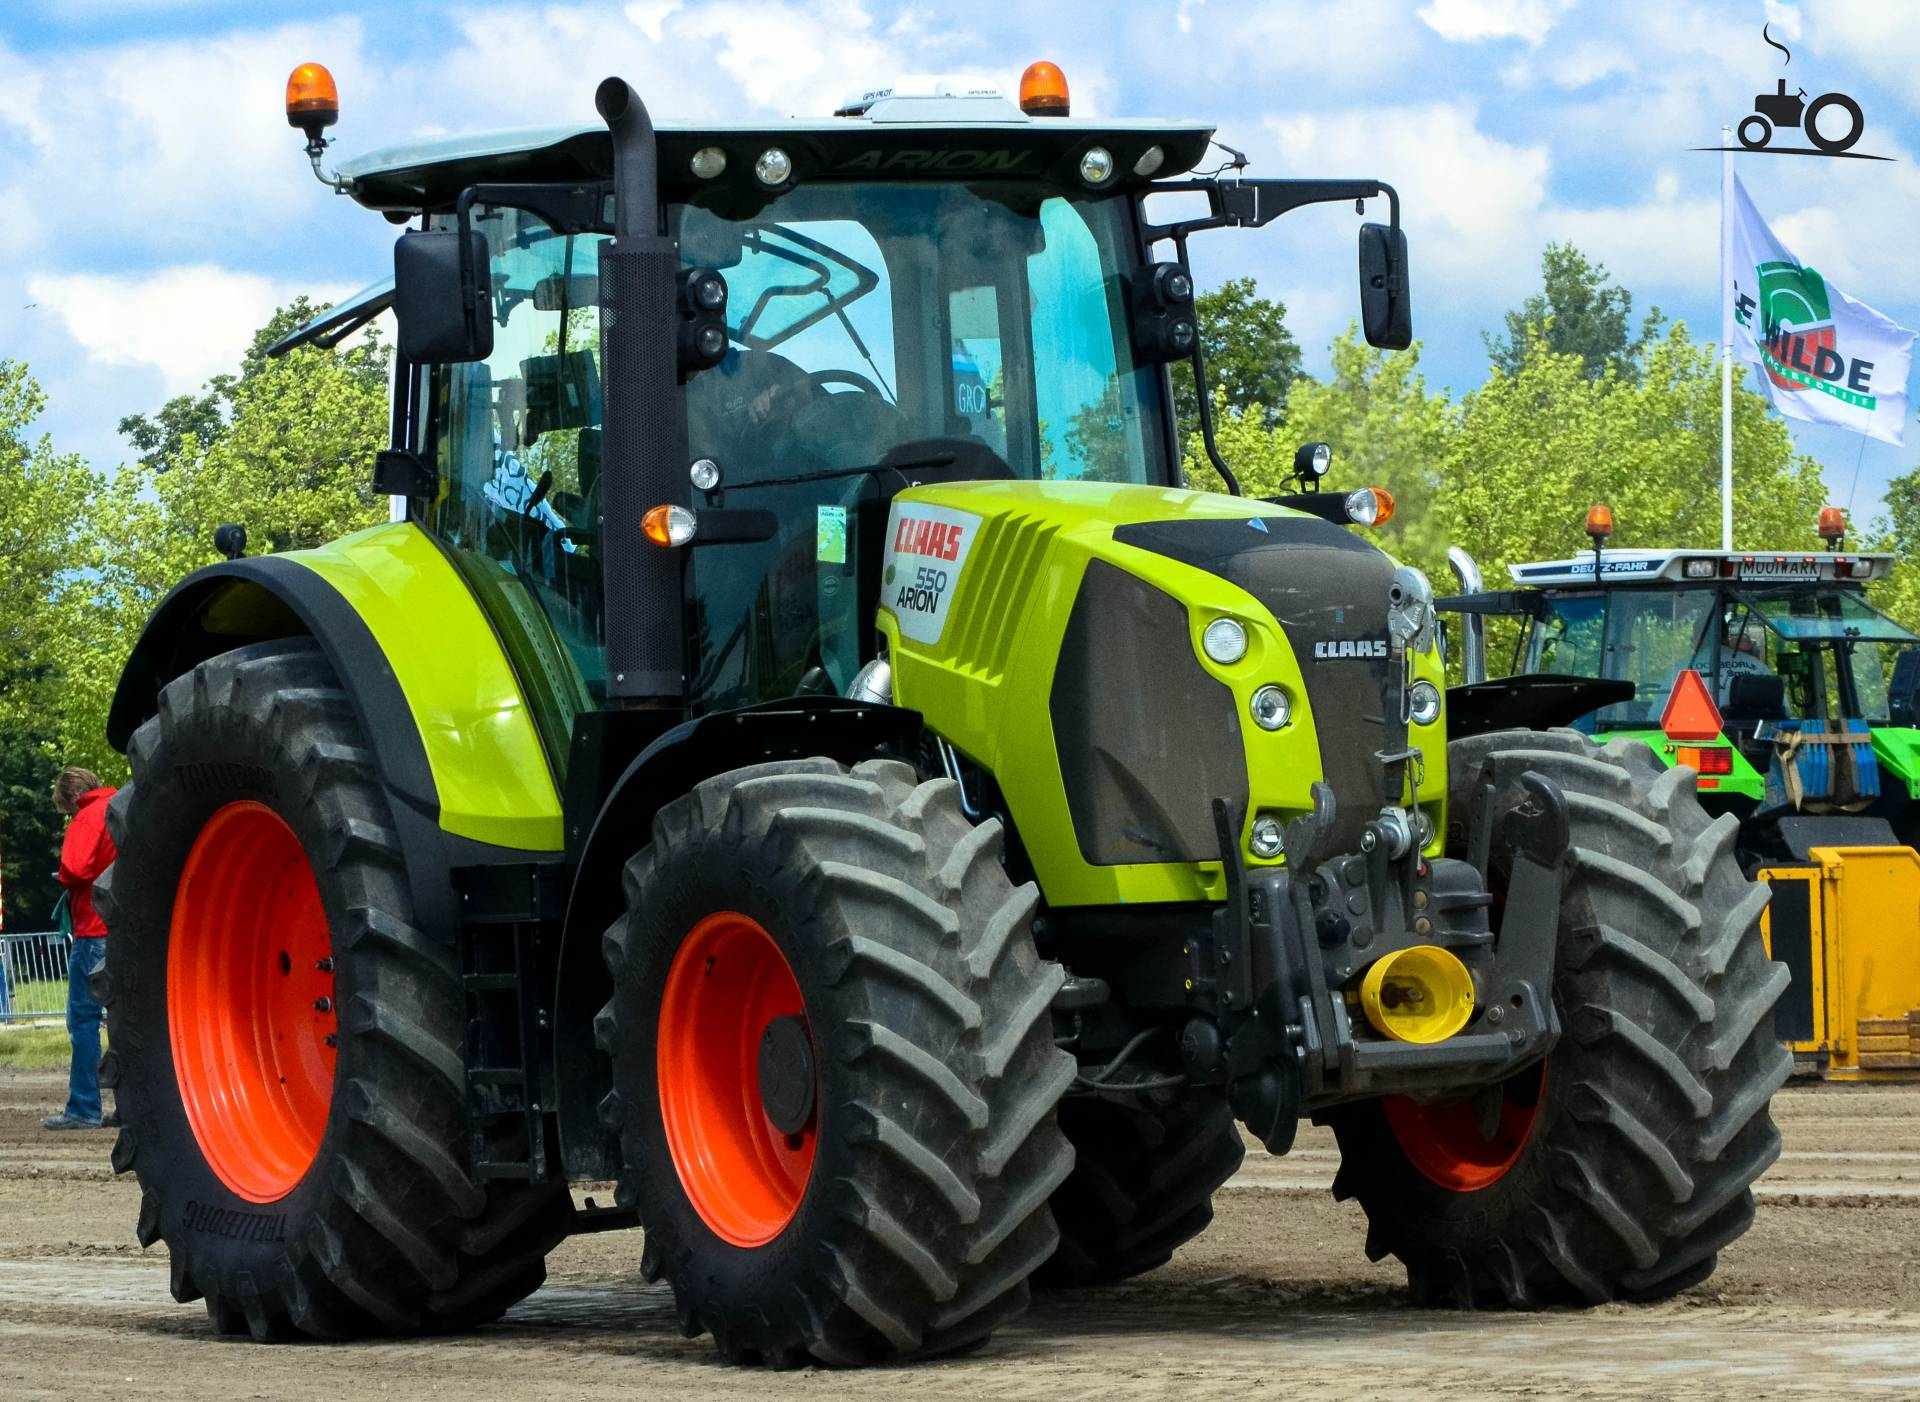 Specs >> Claas Arion 550 Specs and data - Everything about the Claas Arion 550